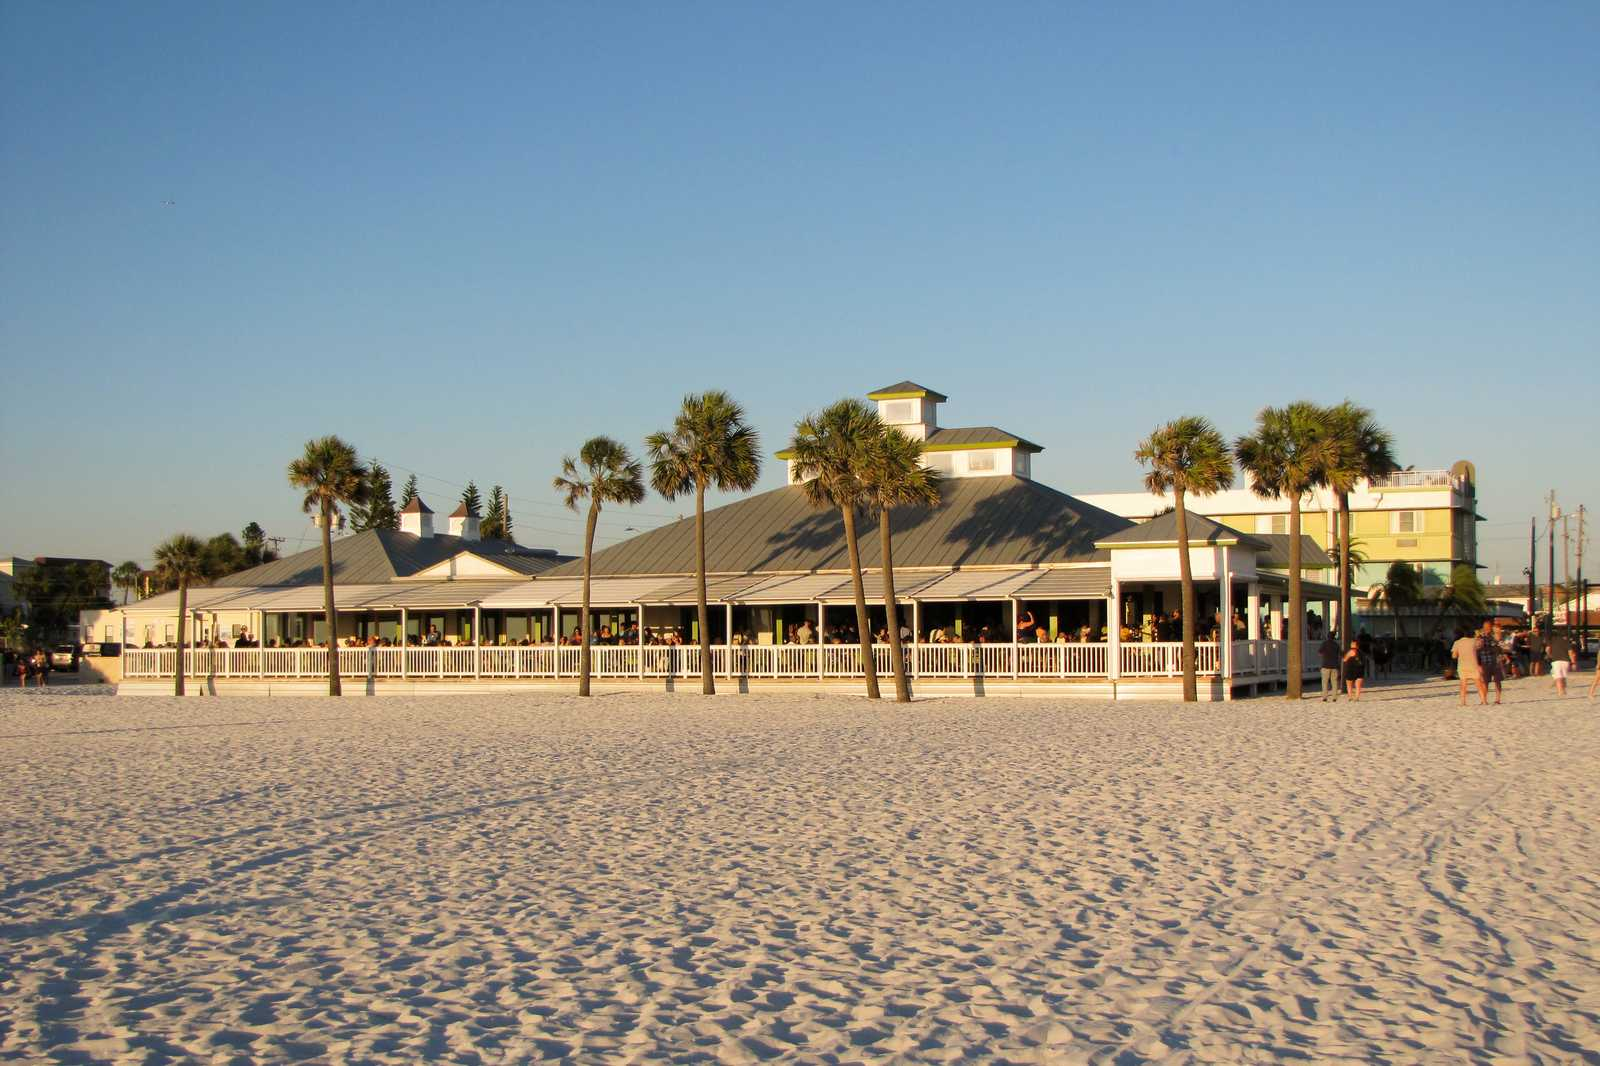 Das Palm Pavilion Beachside Bar & Grill in Clearwater, Florida